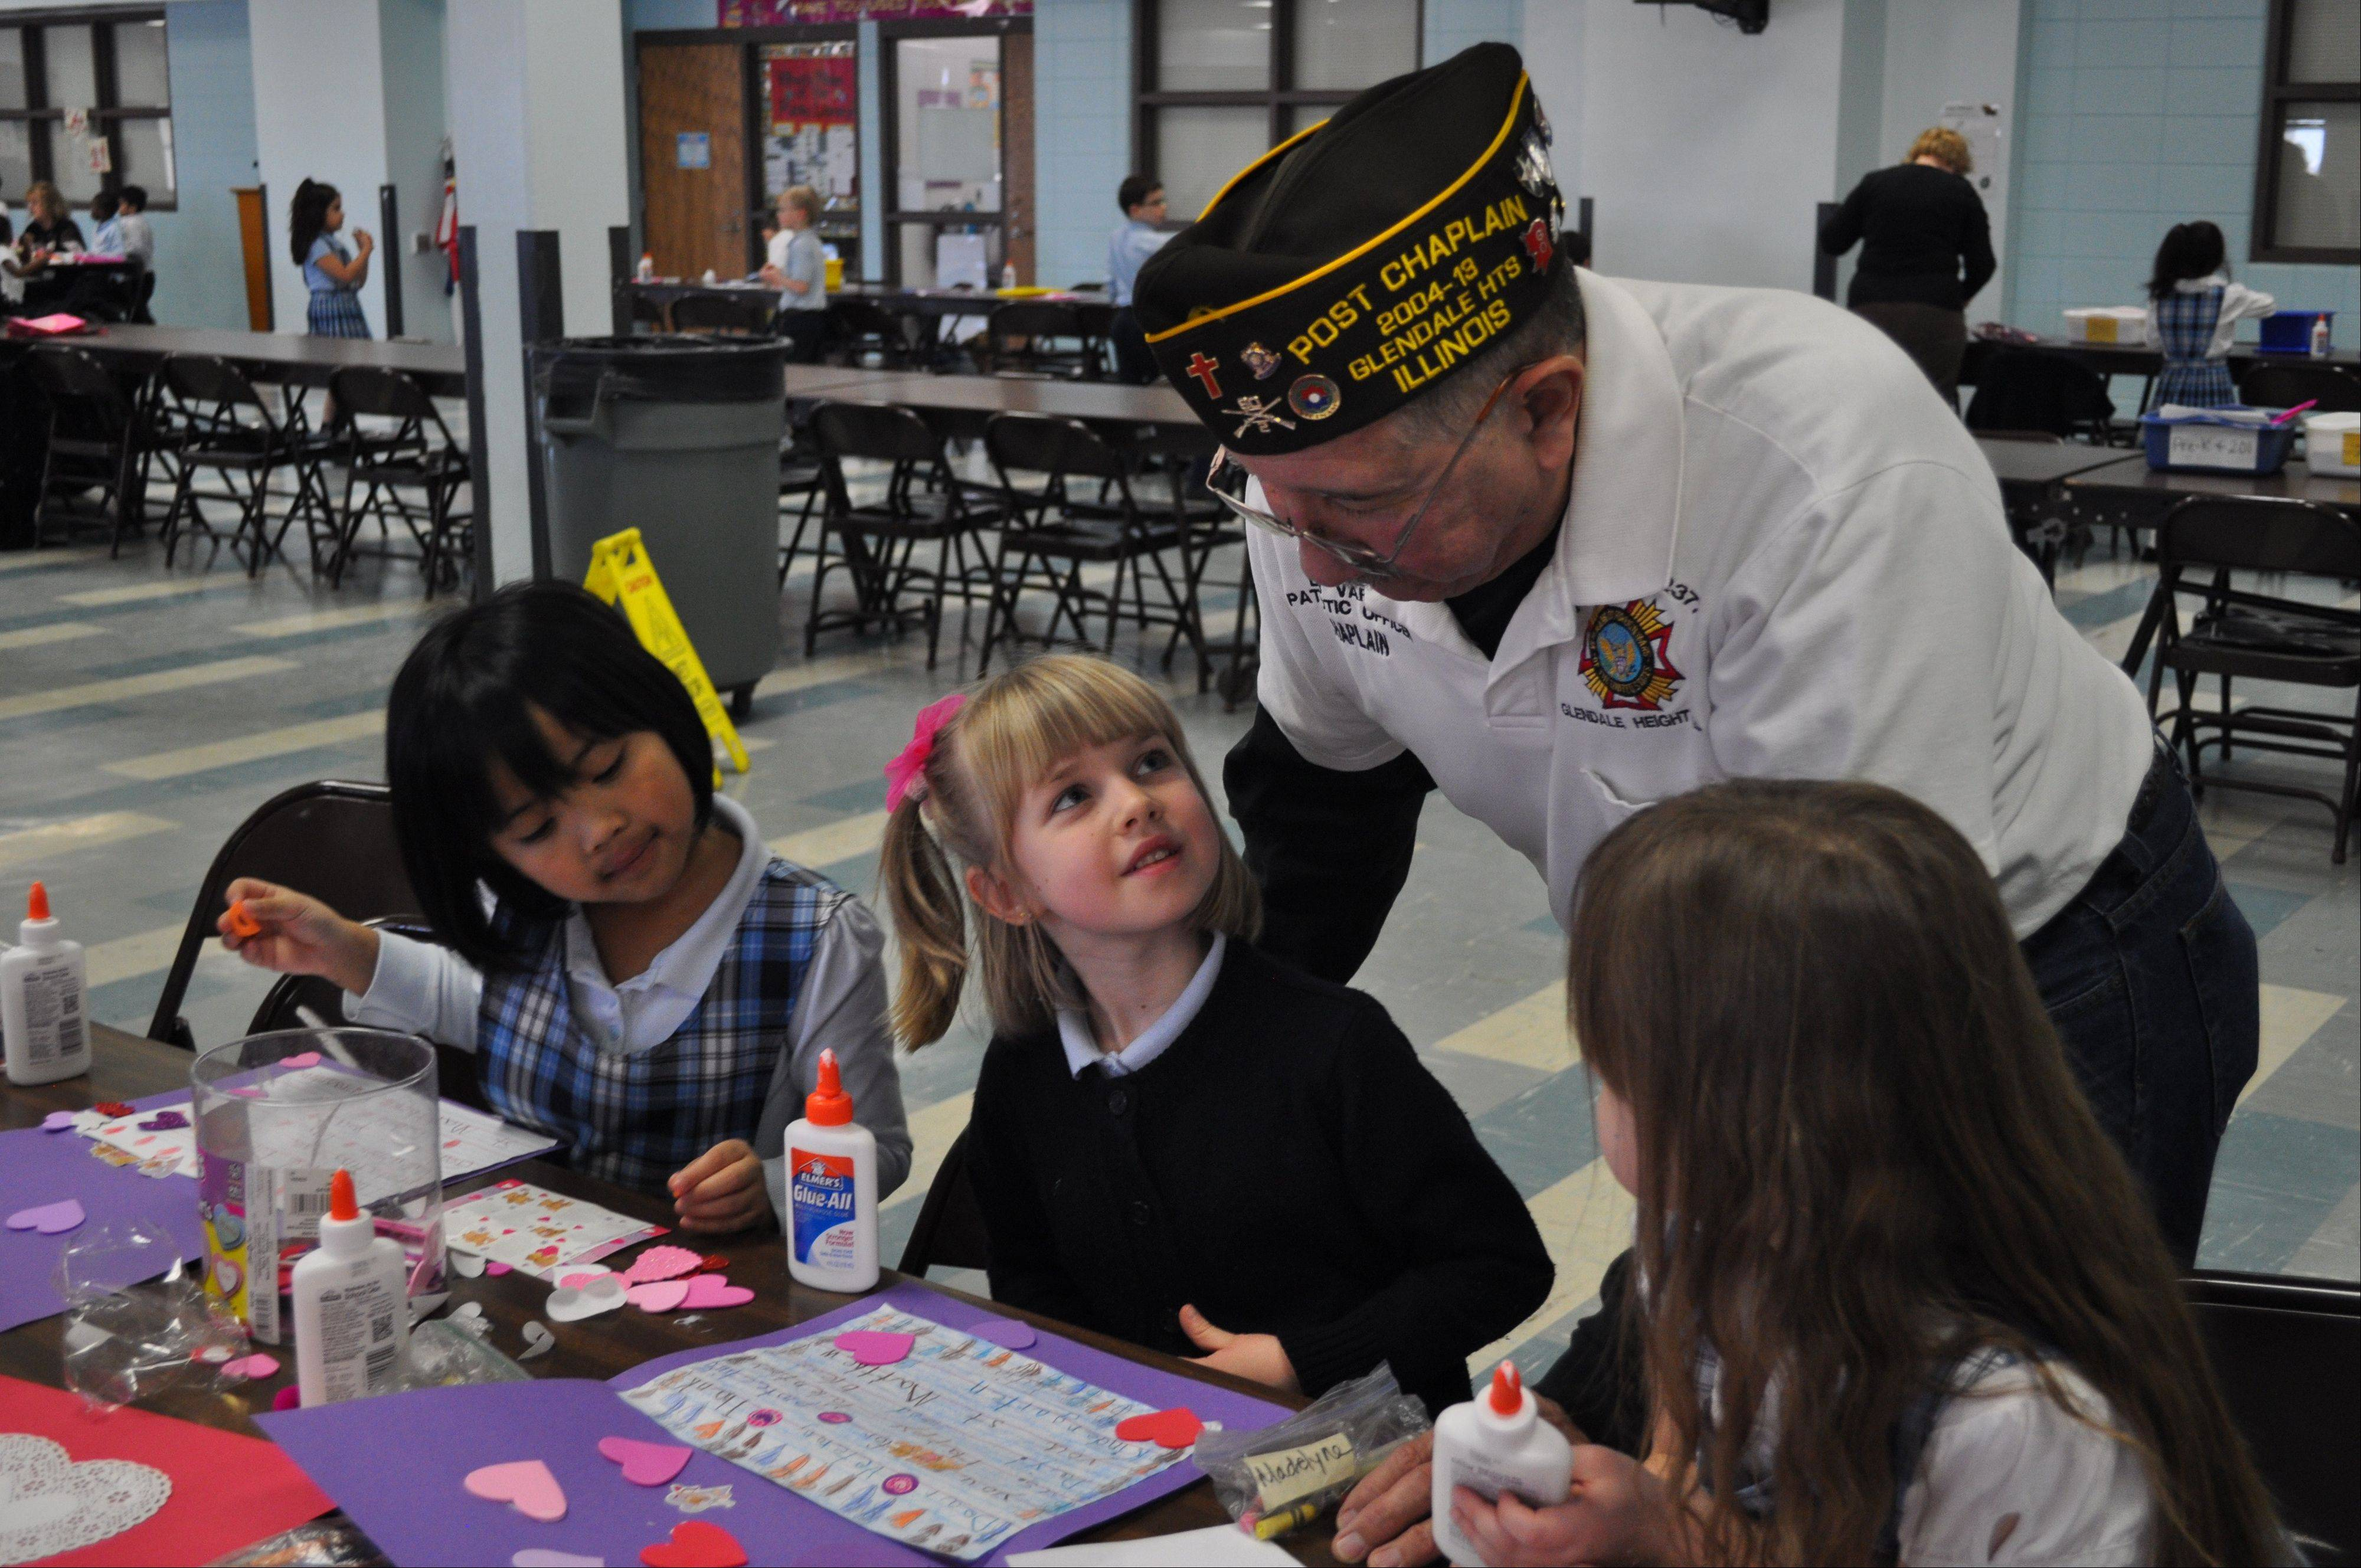 Bob Vargas, Member of VFS Post 2377, helps decorate valentines with St. Matthew School students for the Glendale Heights Valentines for Veterans program.